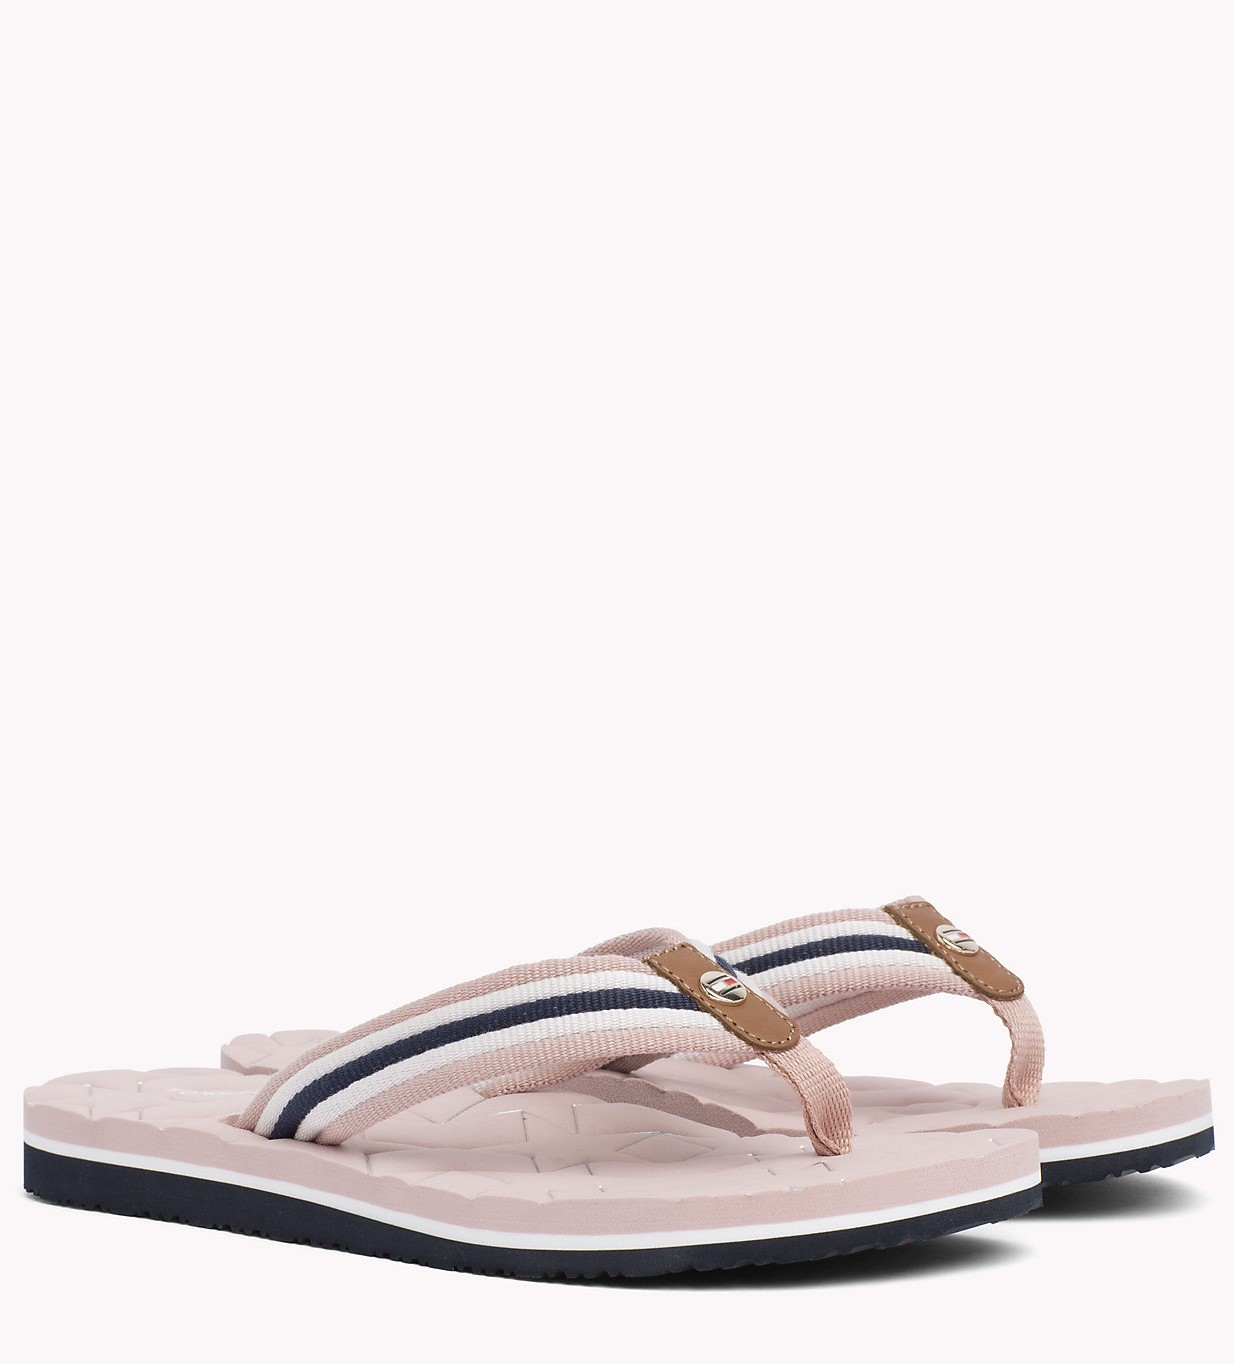 Zehentrenner TOMMY HILFIGER Comfort Low Beach Sandal FW0FW02368 Dusty Rose 502